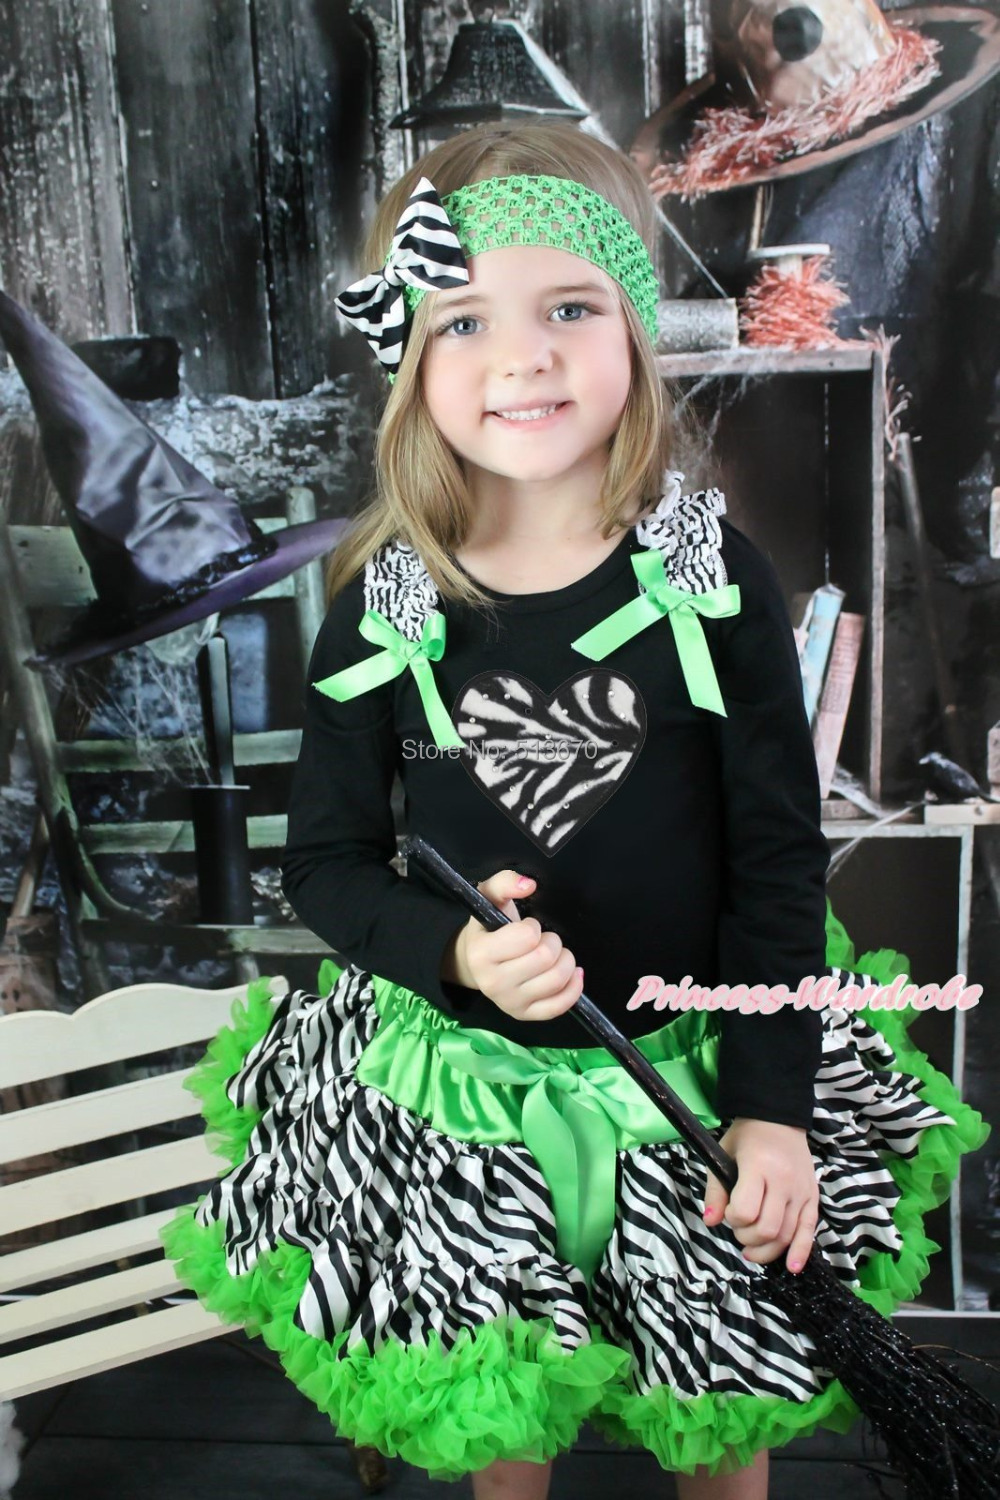 Halloween Zebra Heart Black Top Green Zebra Baby Girl Pettiskirt Outfit 1-8Year MAMG1224 xmas rhinestone santa baby top green white dot red skirt baby girl outfit 1 8y mapsa0048